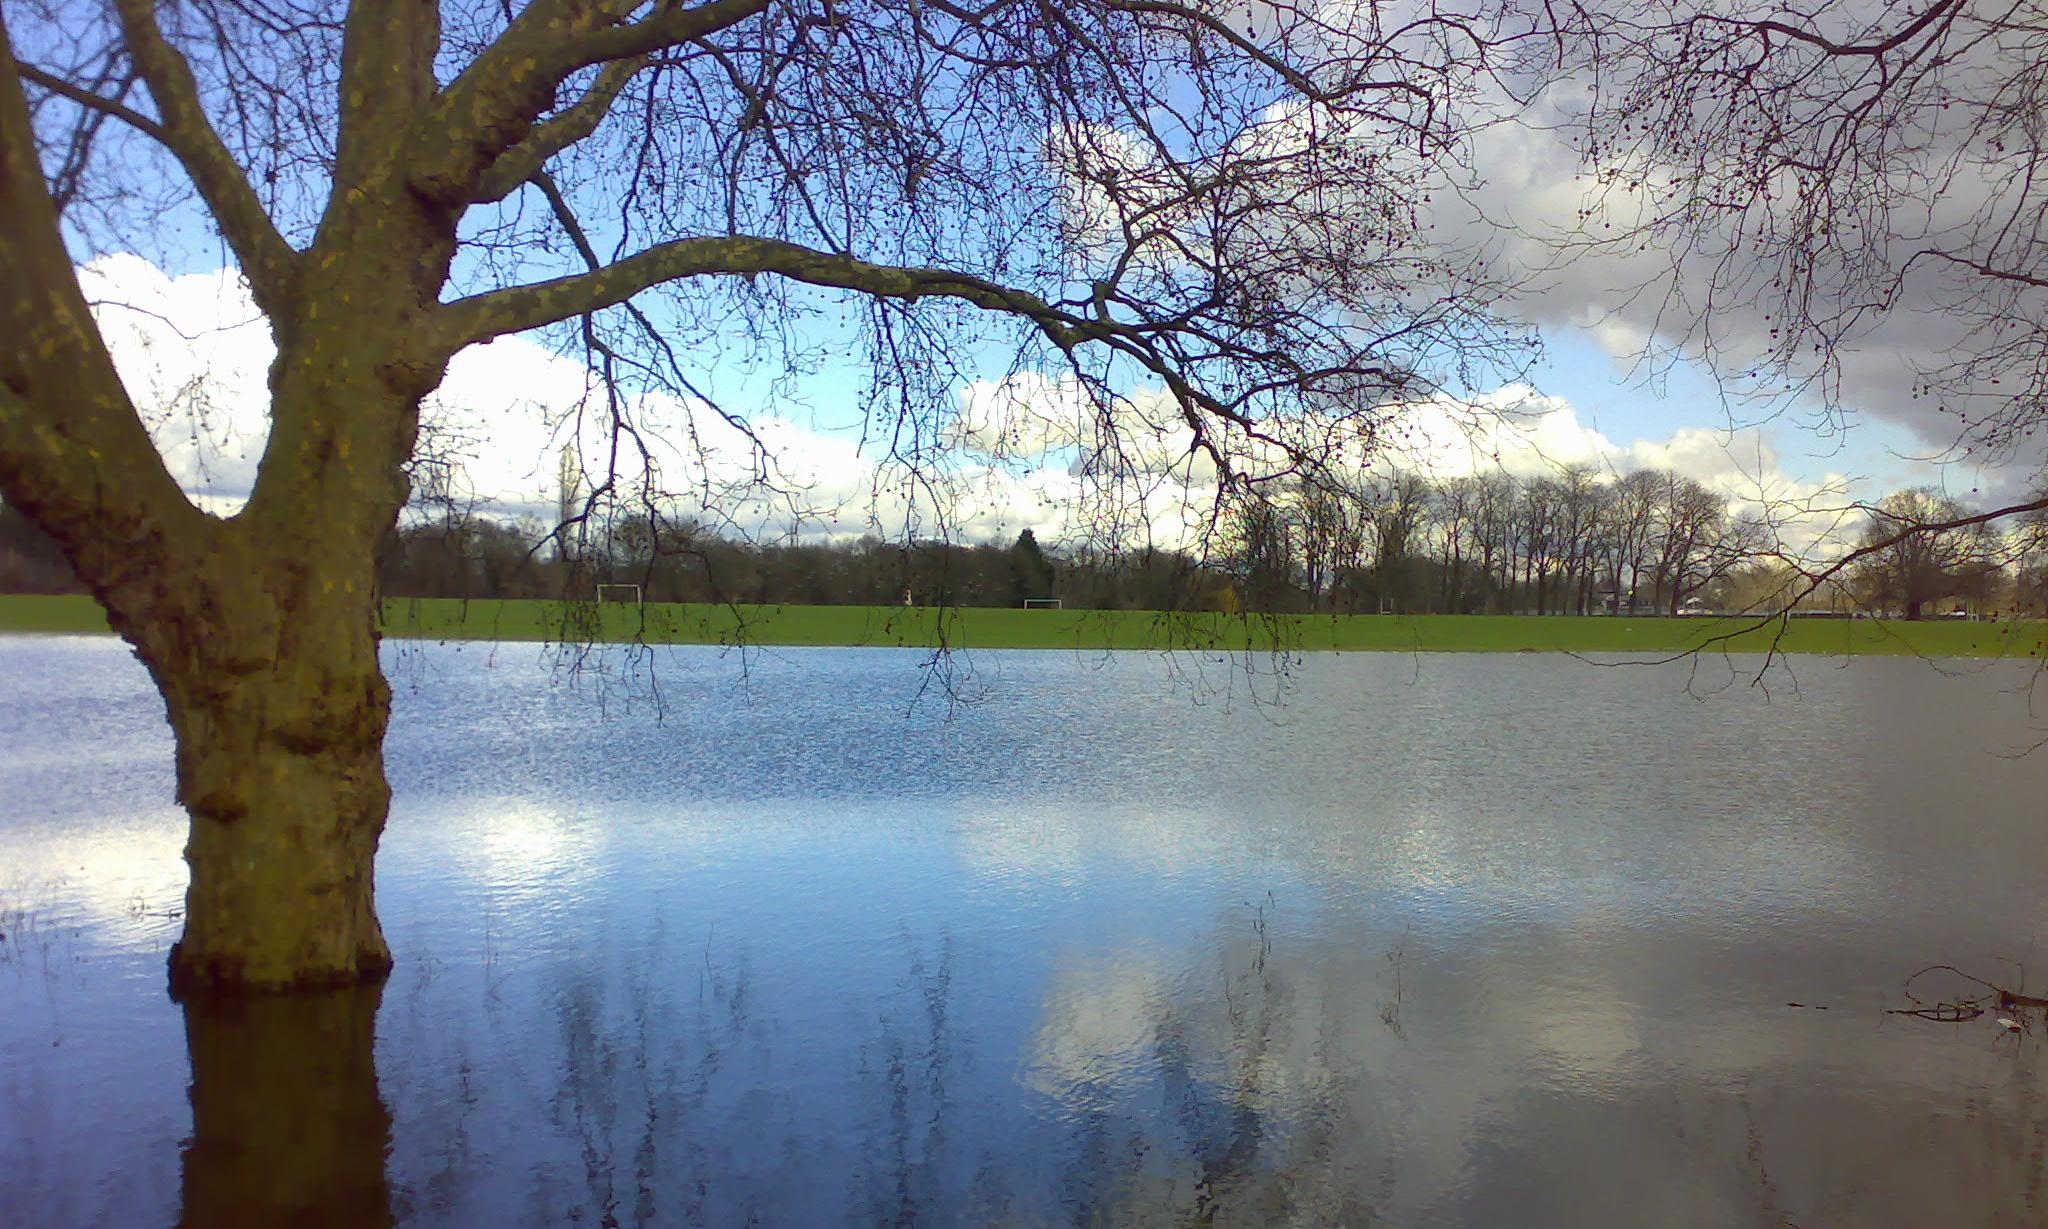 Rewilding project aims to give Thames its flood plain back